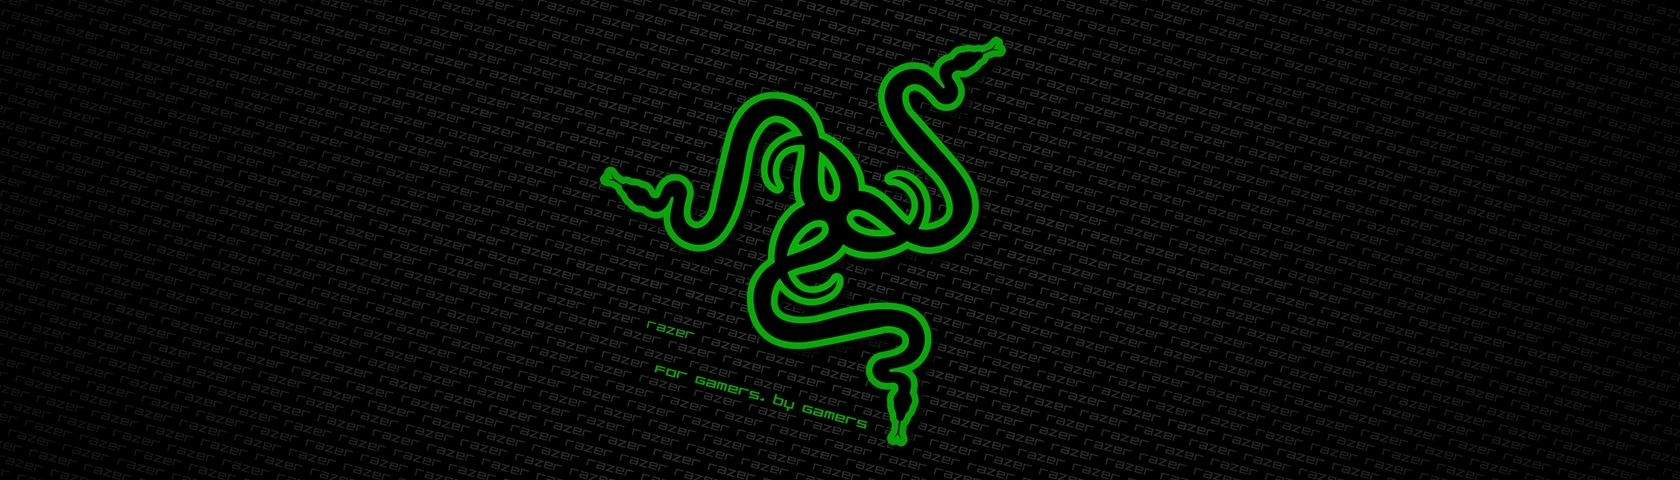 razer wallpaper • images • wallpaperfusionbinary fortress software